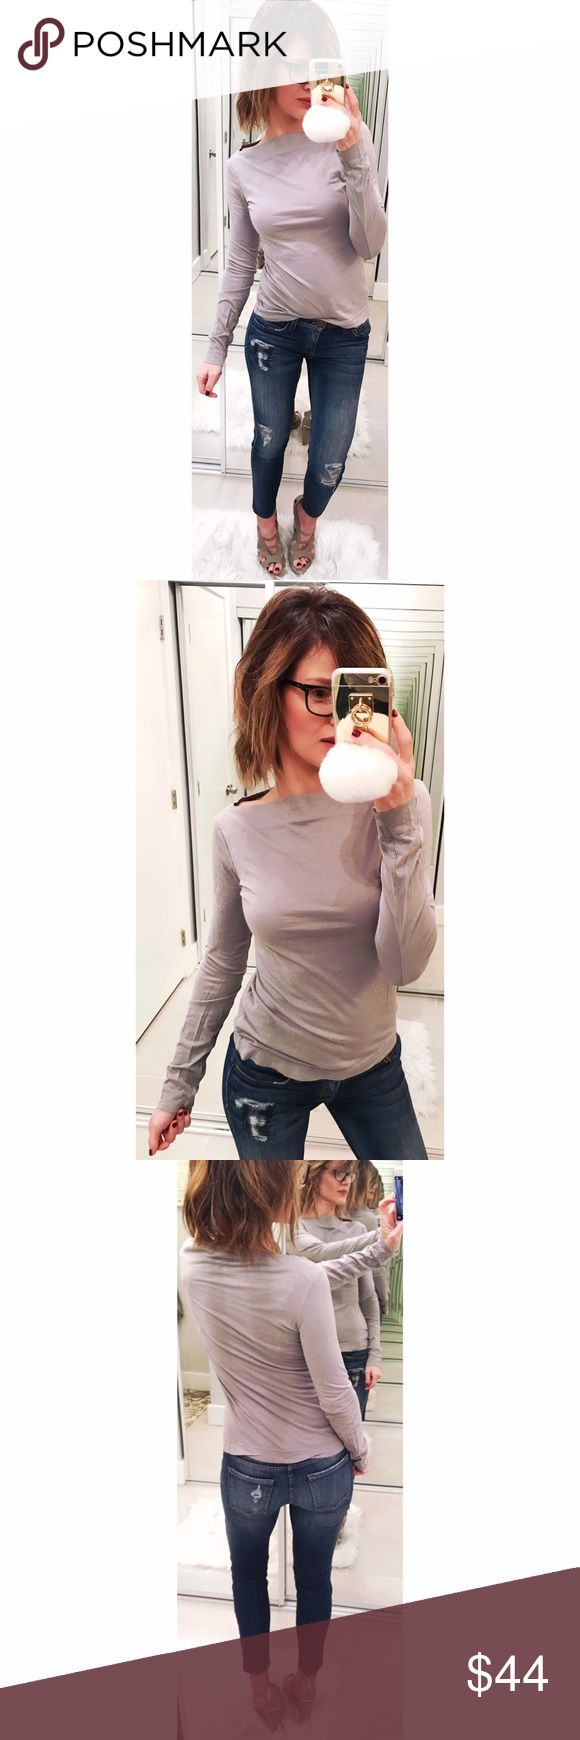 ➡James Perse Gray Boatneck Long Sleeve Tee⬅ A super soft essential top in a versatile gray color. Size 1 = size small. 💕Offers welcome. Take 30% off your entire purchase automatically at checkout when you use the bundle feature, or make an offer for your bundle. Happy Poshing!💕 James Perse Tops Tees - Long Sleeve